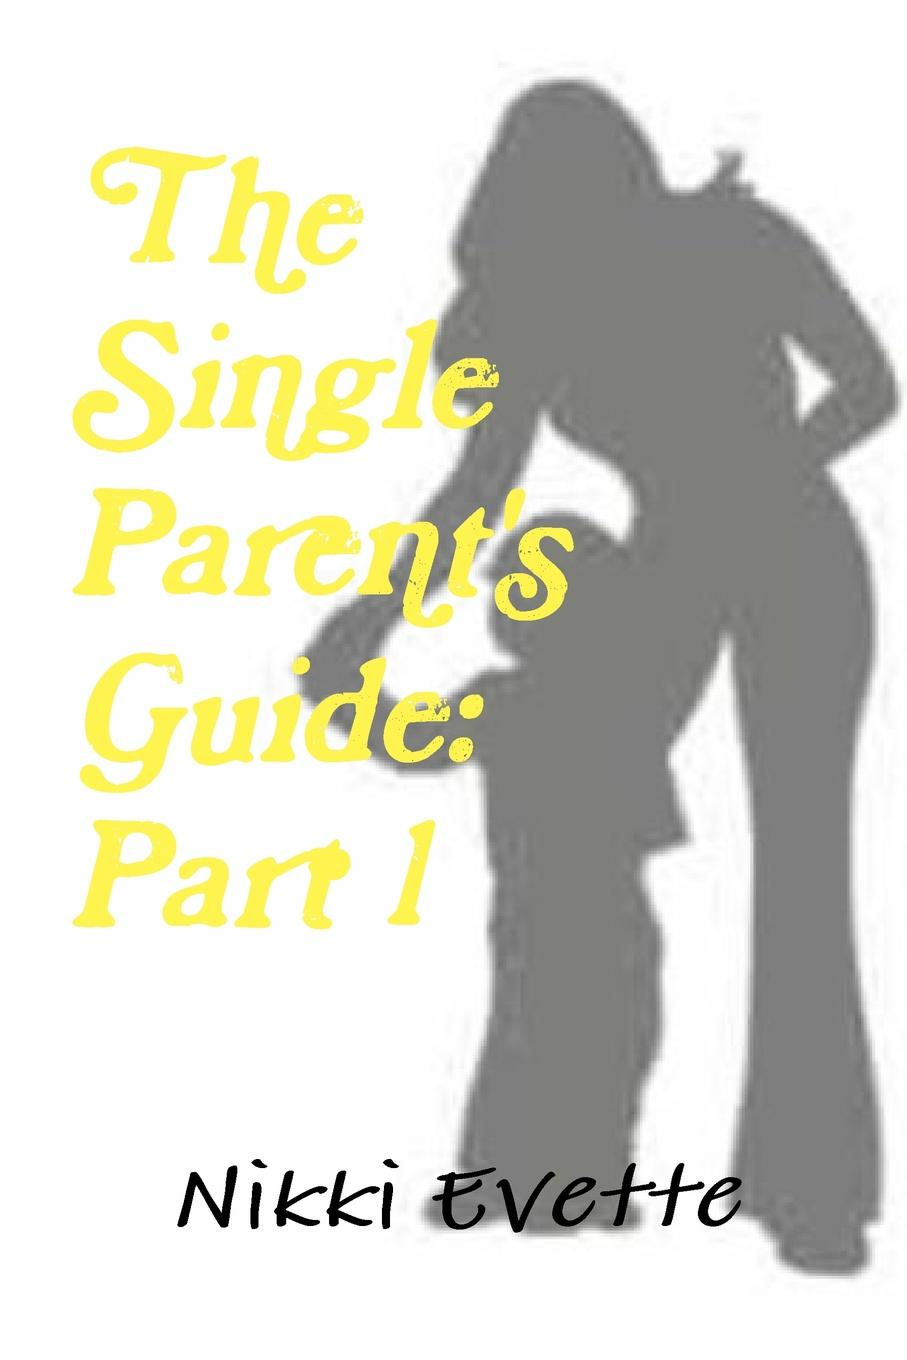 Nikki Evette The Single Parent.s Guide. Part 1 grainne smith anorexia and bulimia in the family one parent s practical guide to recovery